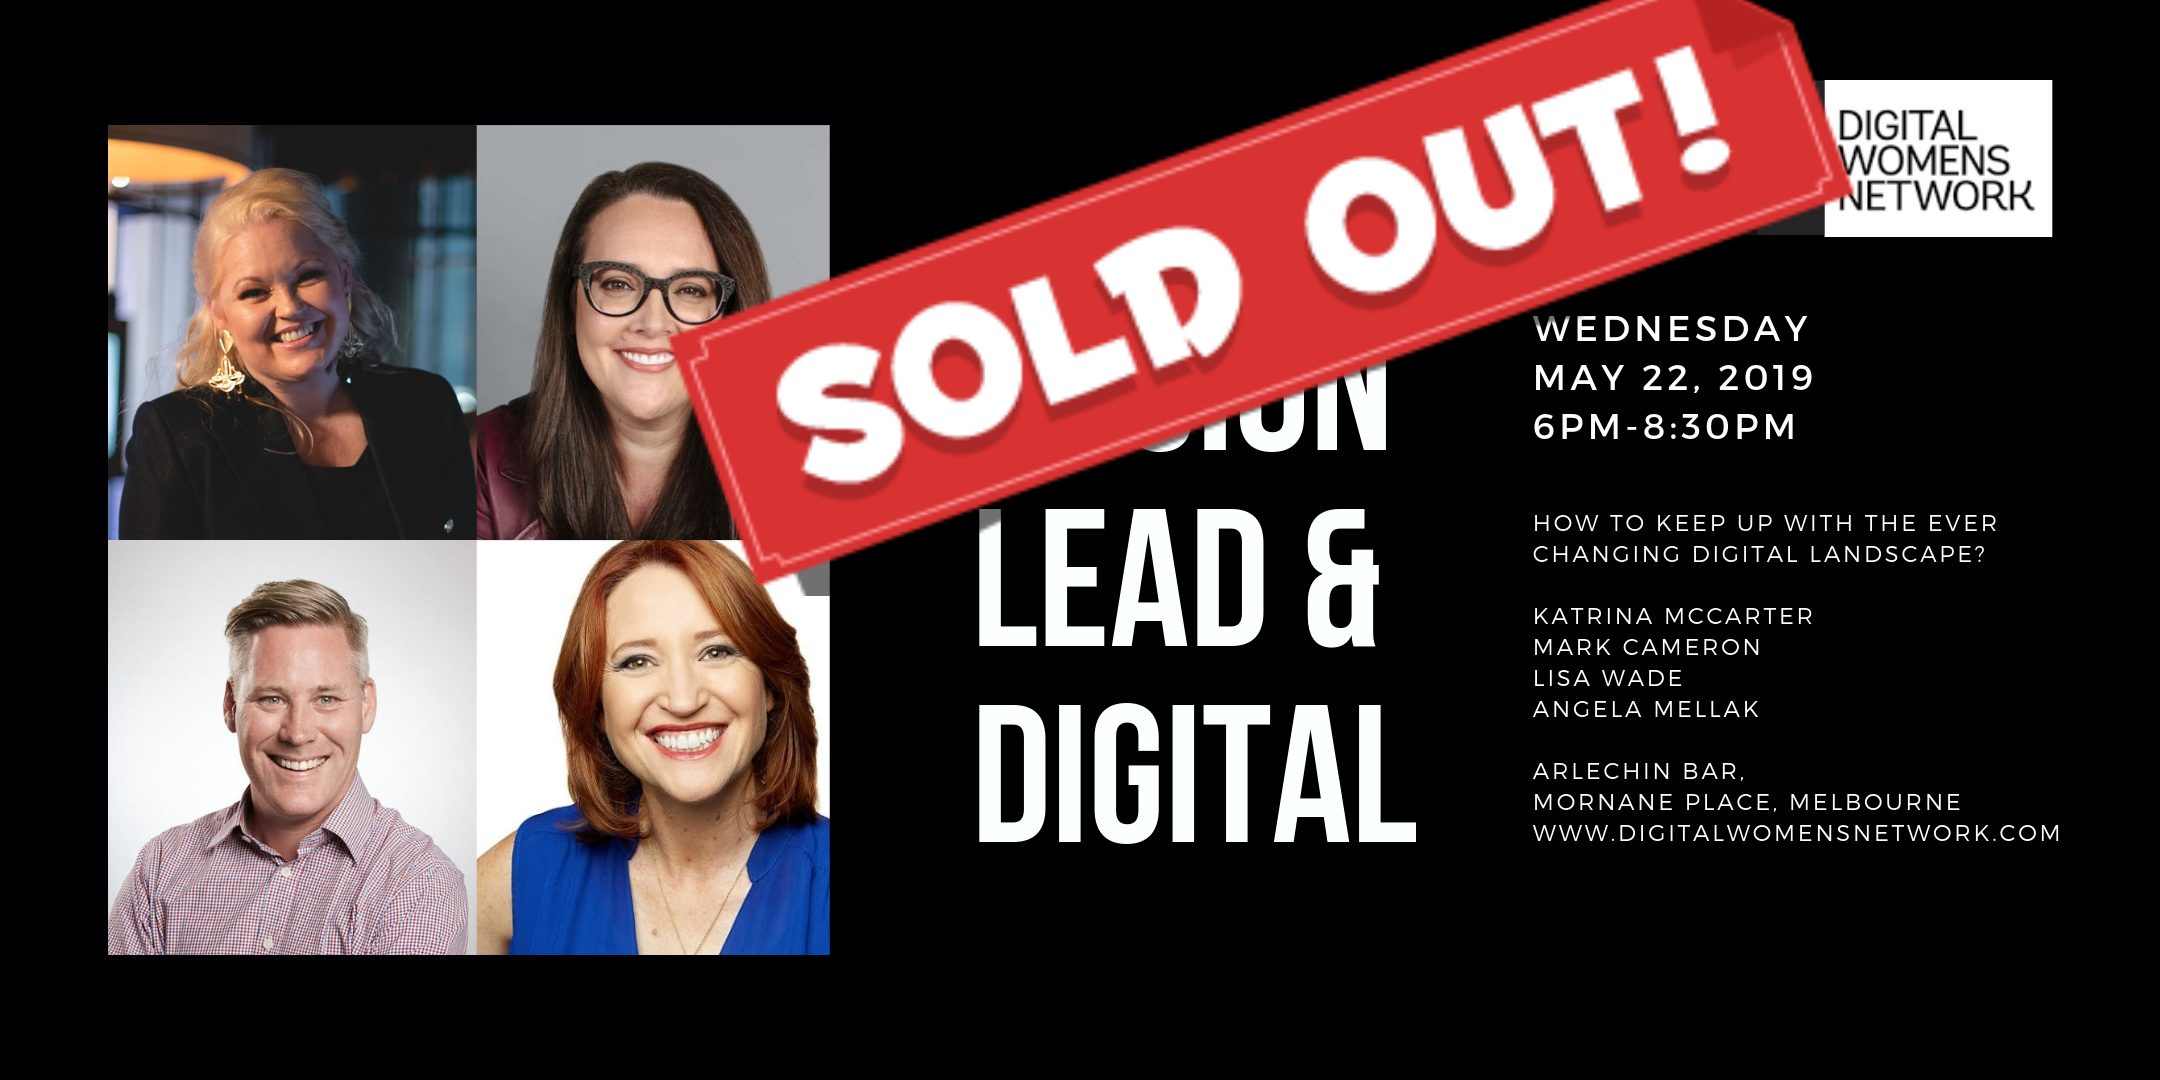 SOLD OUT!! HOW TO KEEP UP WITH THE EVER CHANGING DIGITAL LANDSCAPE!